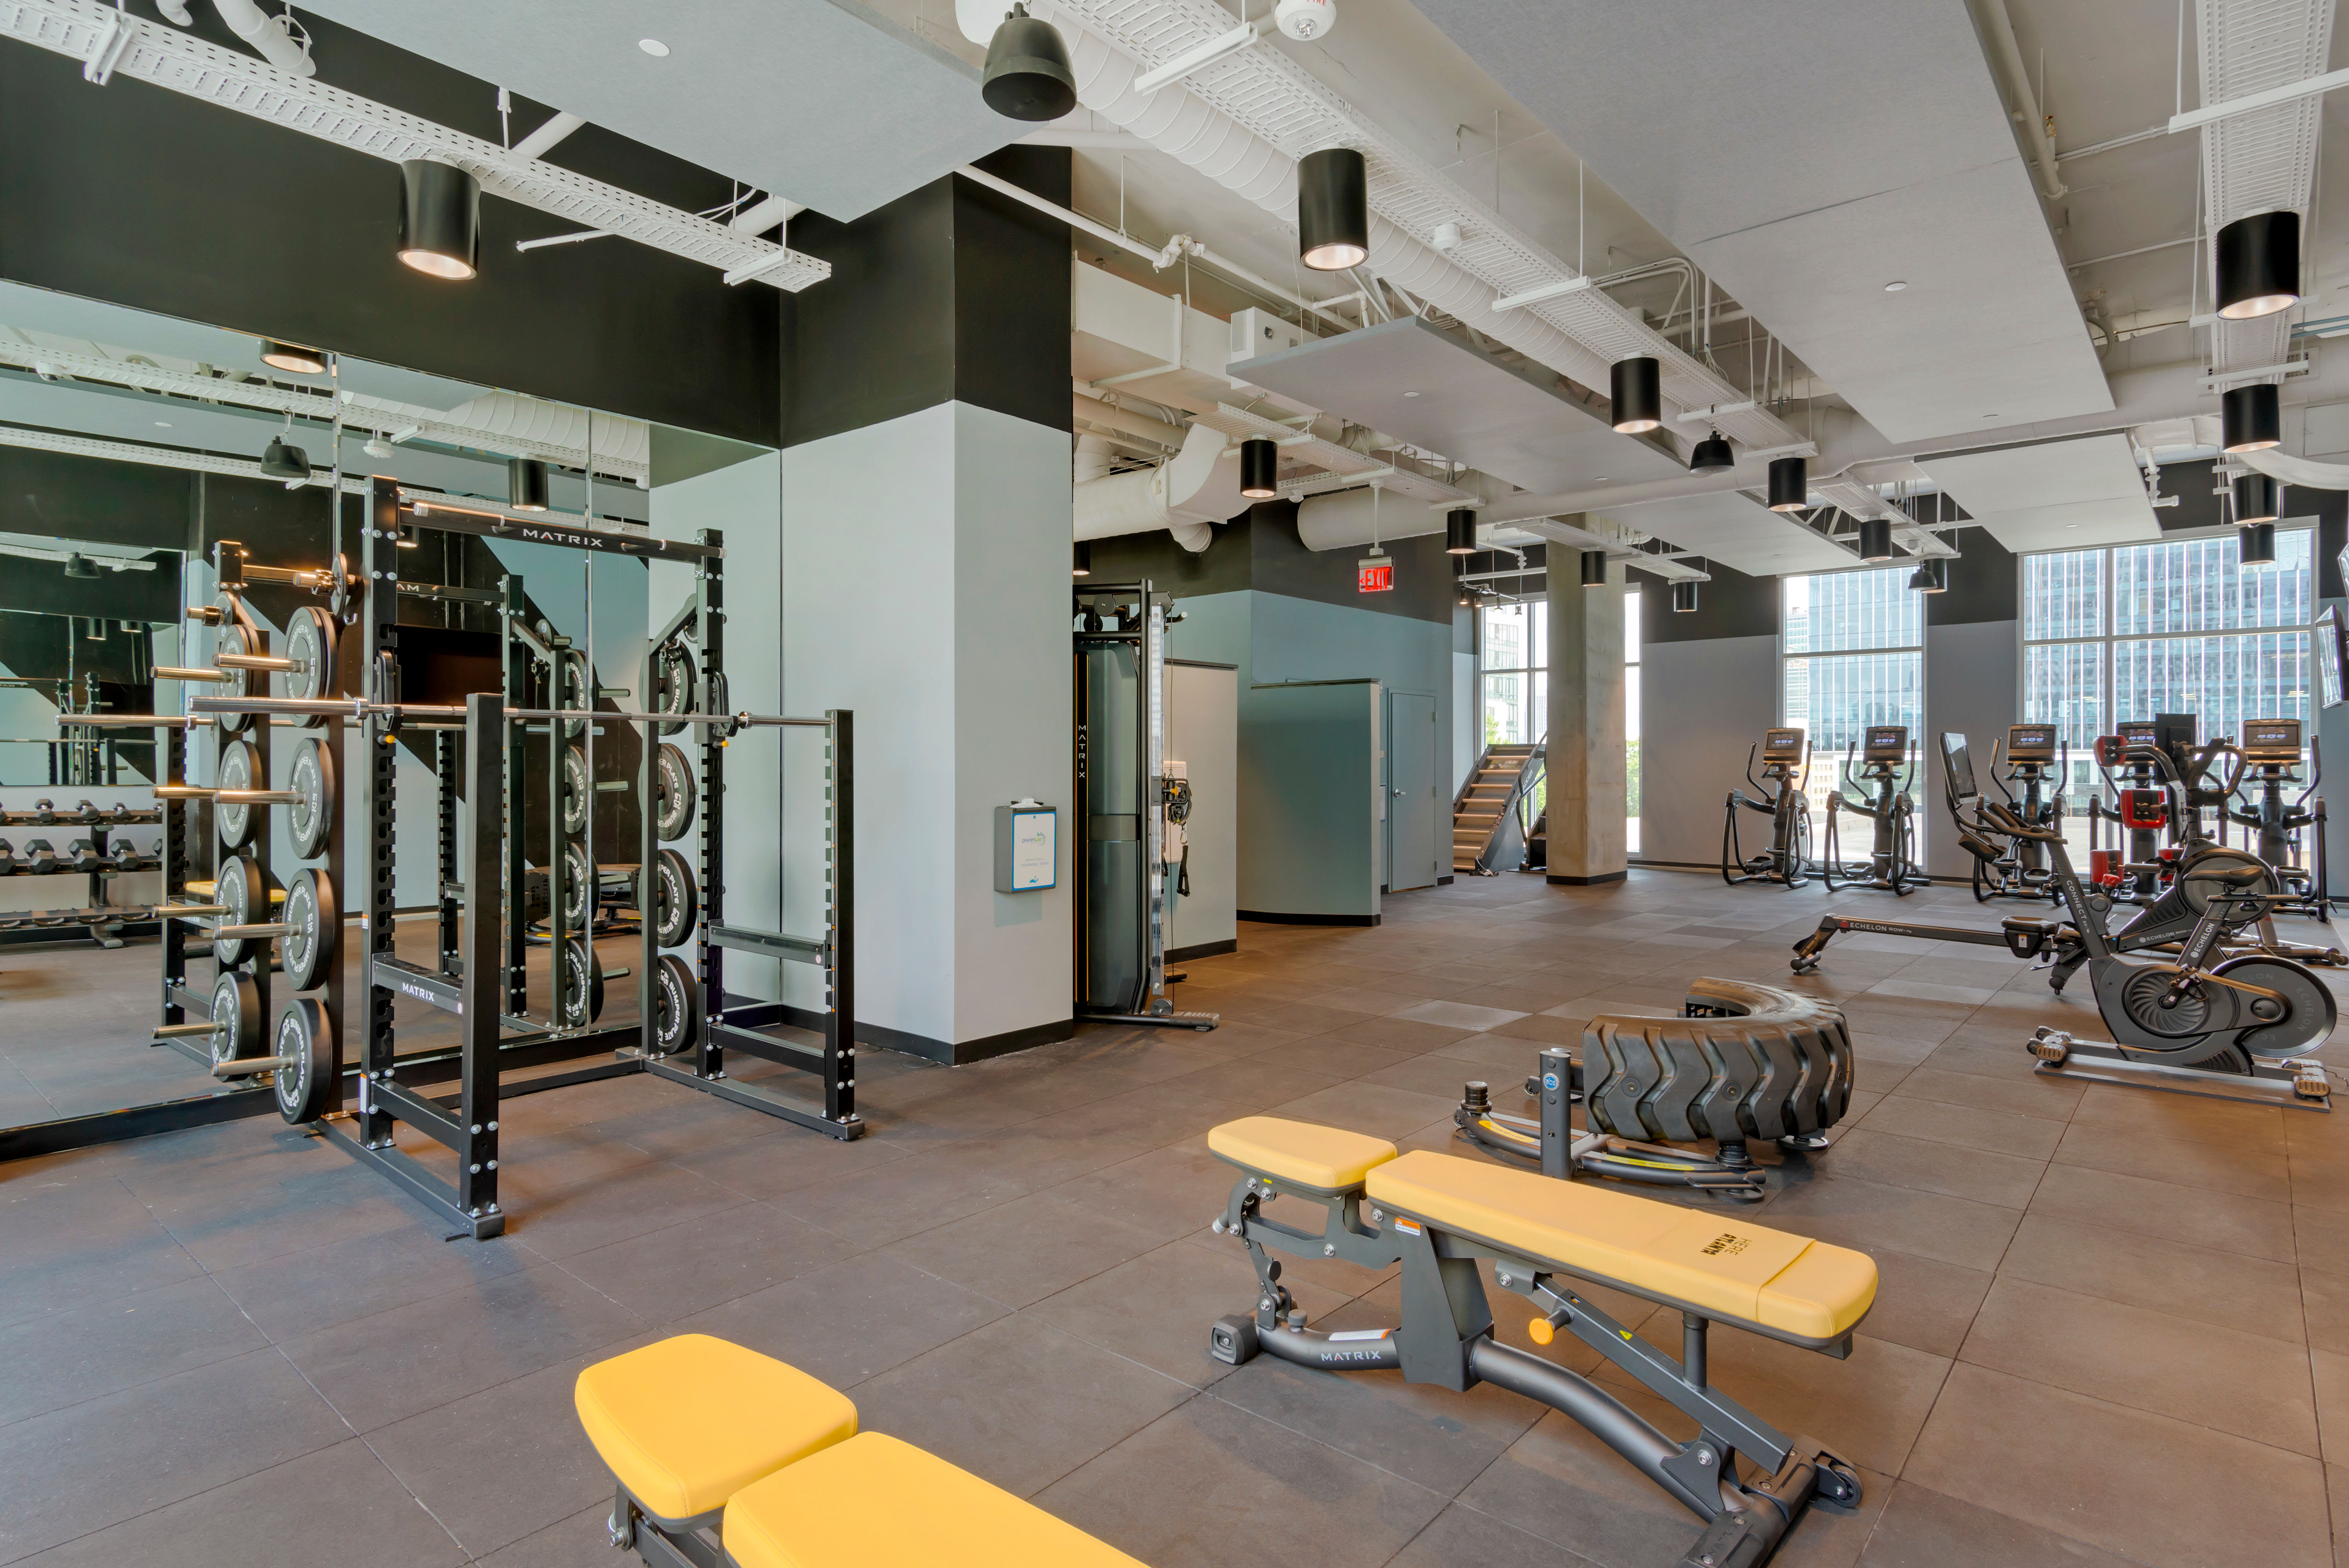 State of the art fitness center for student residents at HERE Atlanta in Atlanta, Georgia